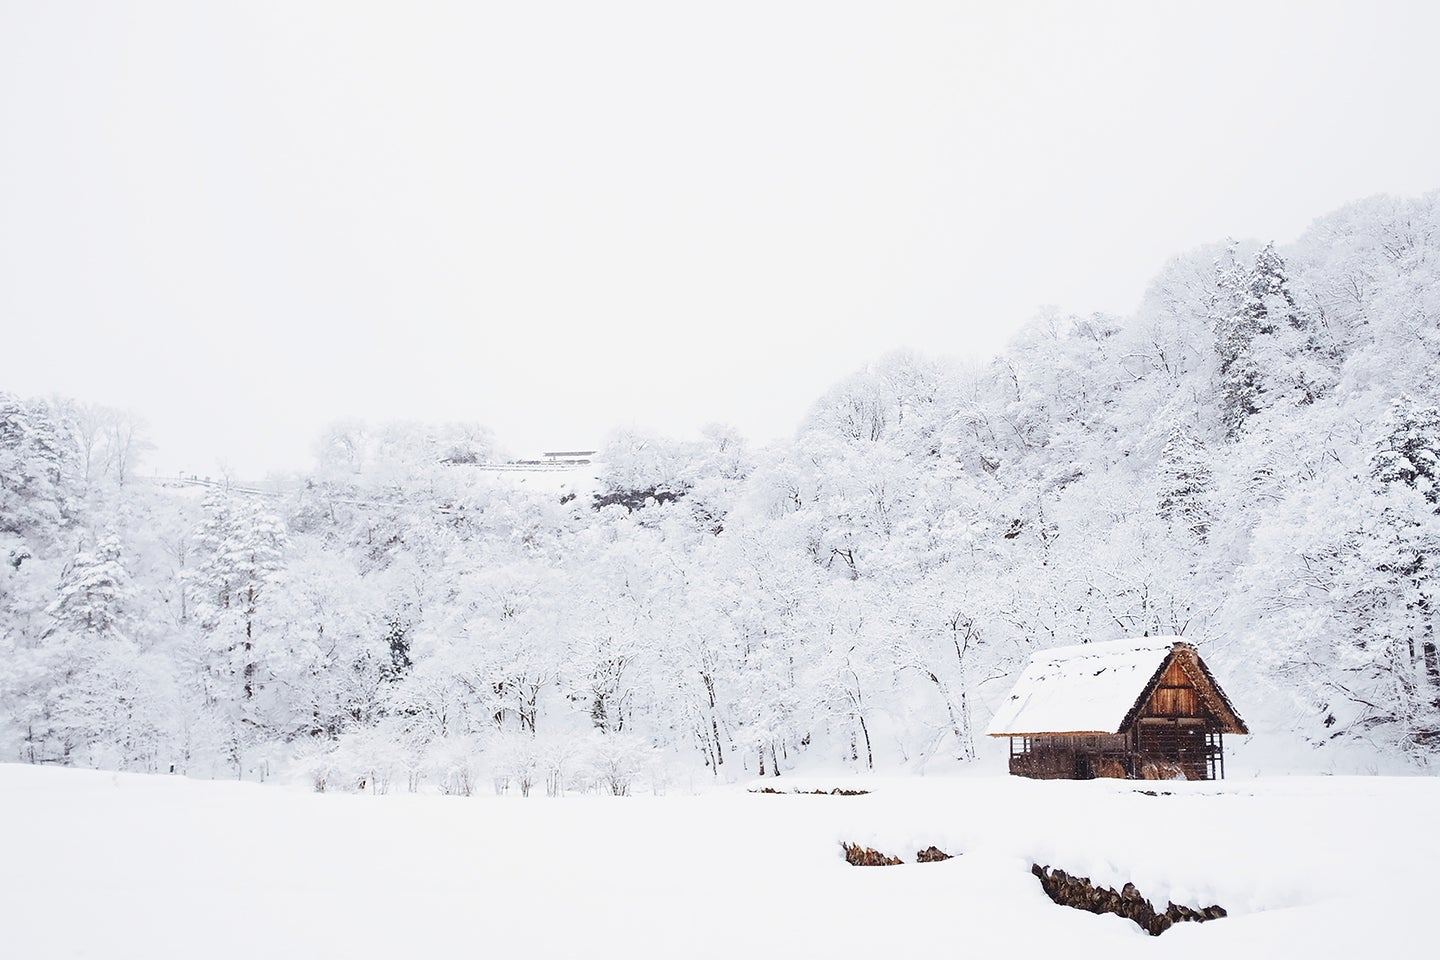 cabin in the woods with a lot of snow around it and snow covered trees